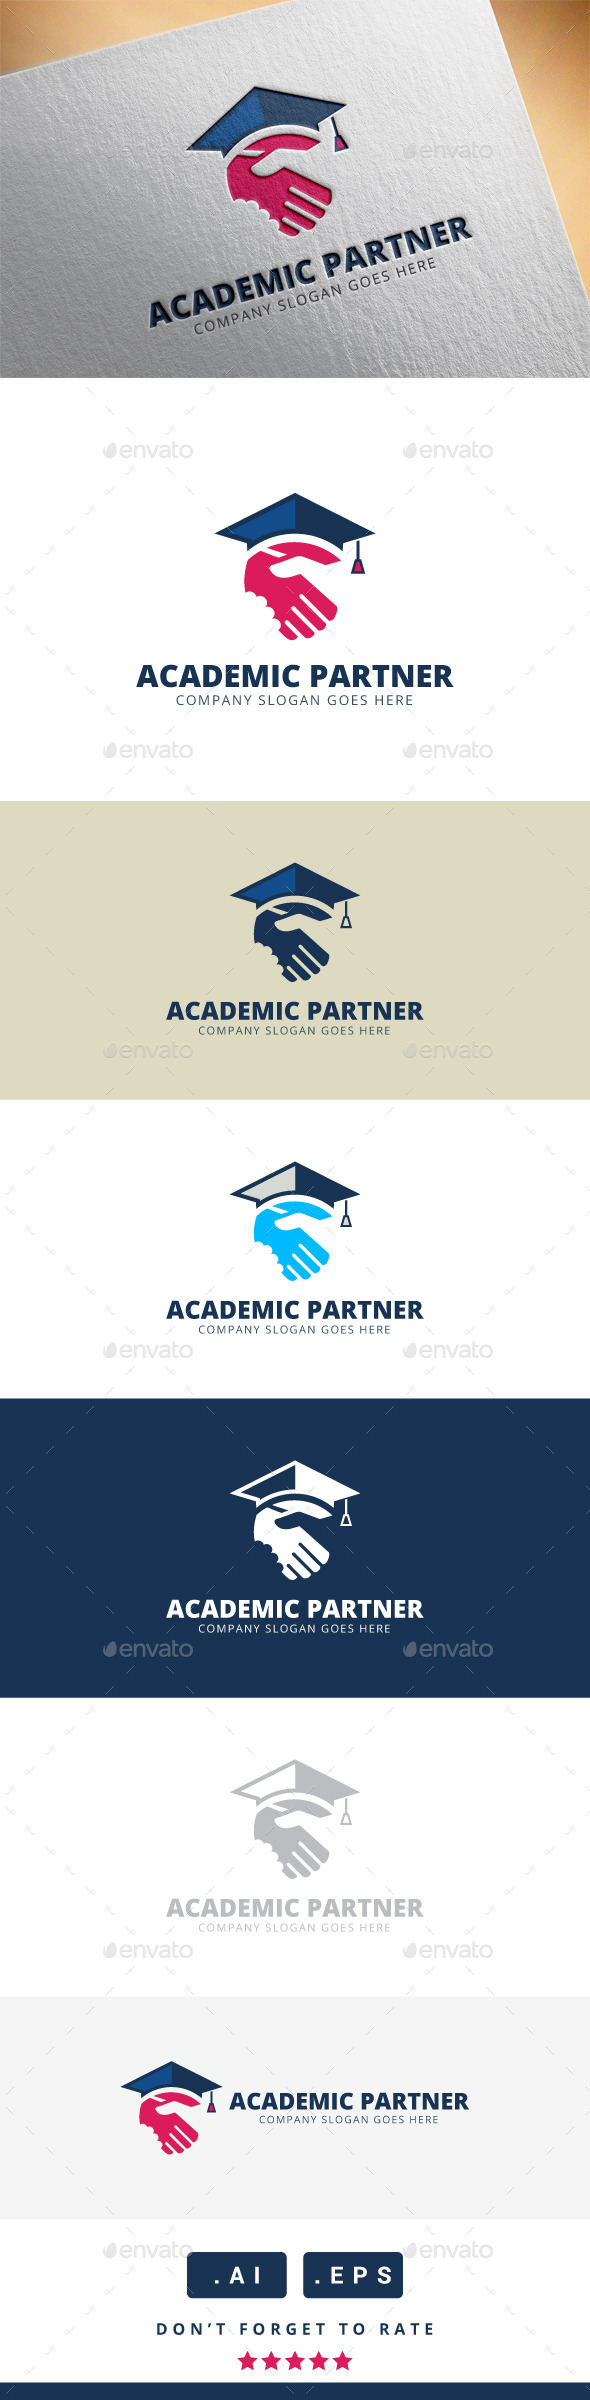 GraphicRiver Academic Partner Logo 11340032